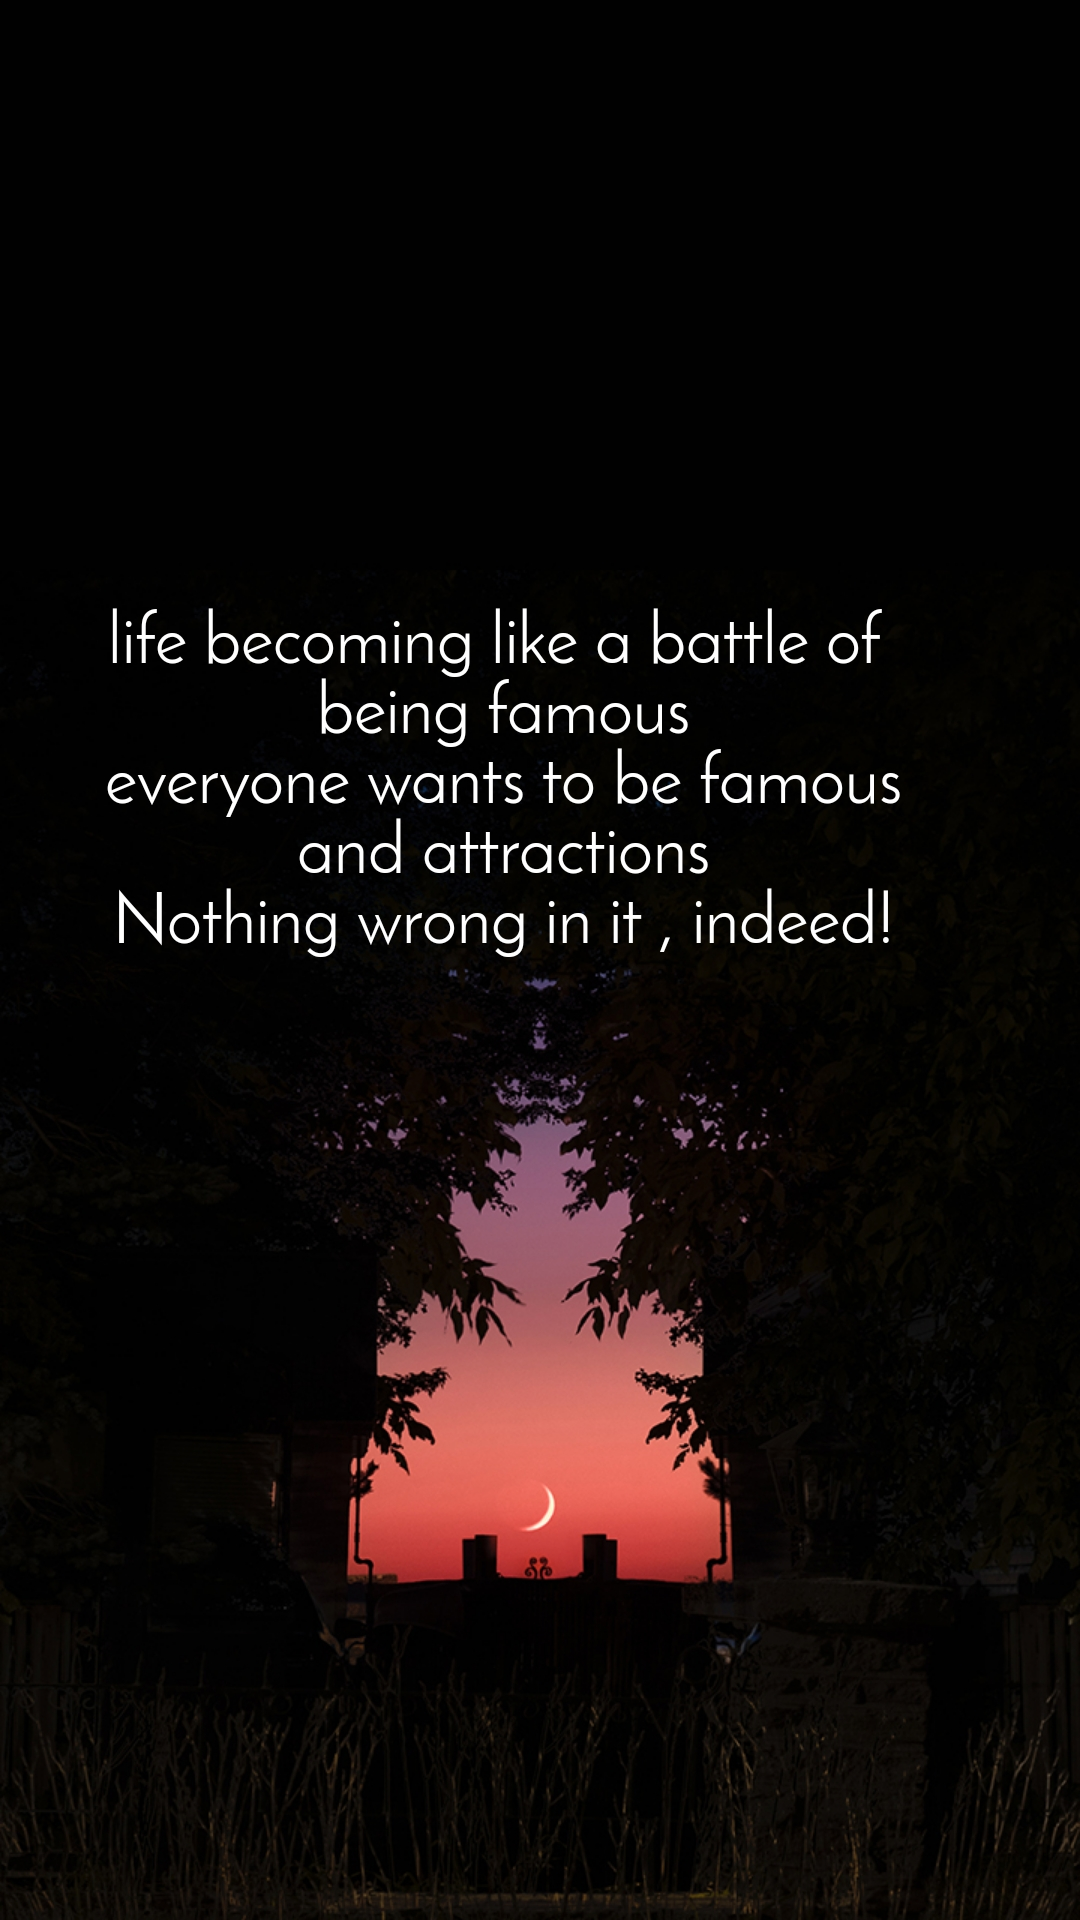 life becoming like a battle of  being famous everyone wants to be famous and attractions Nothing wrong in it , indeed!